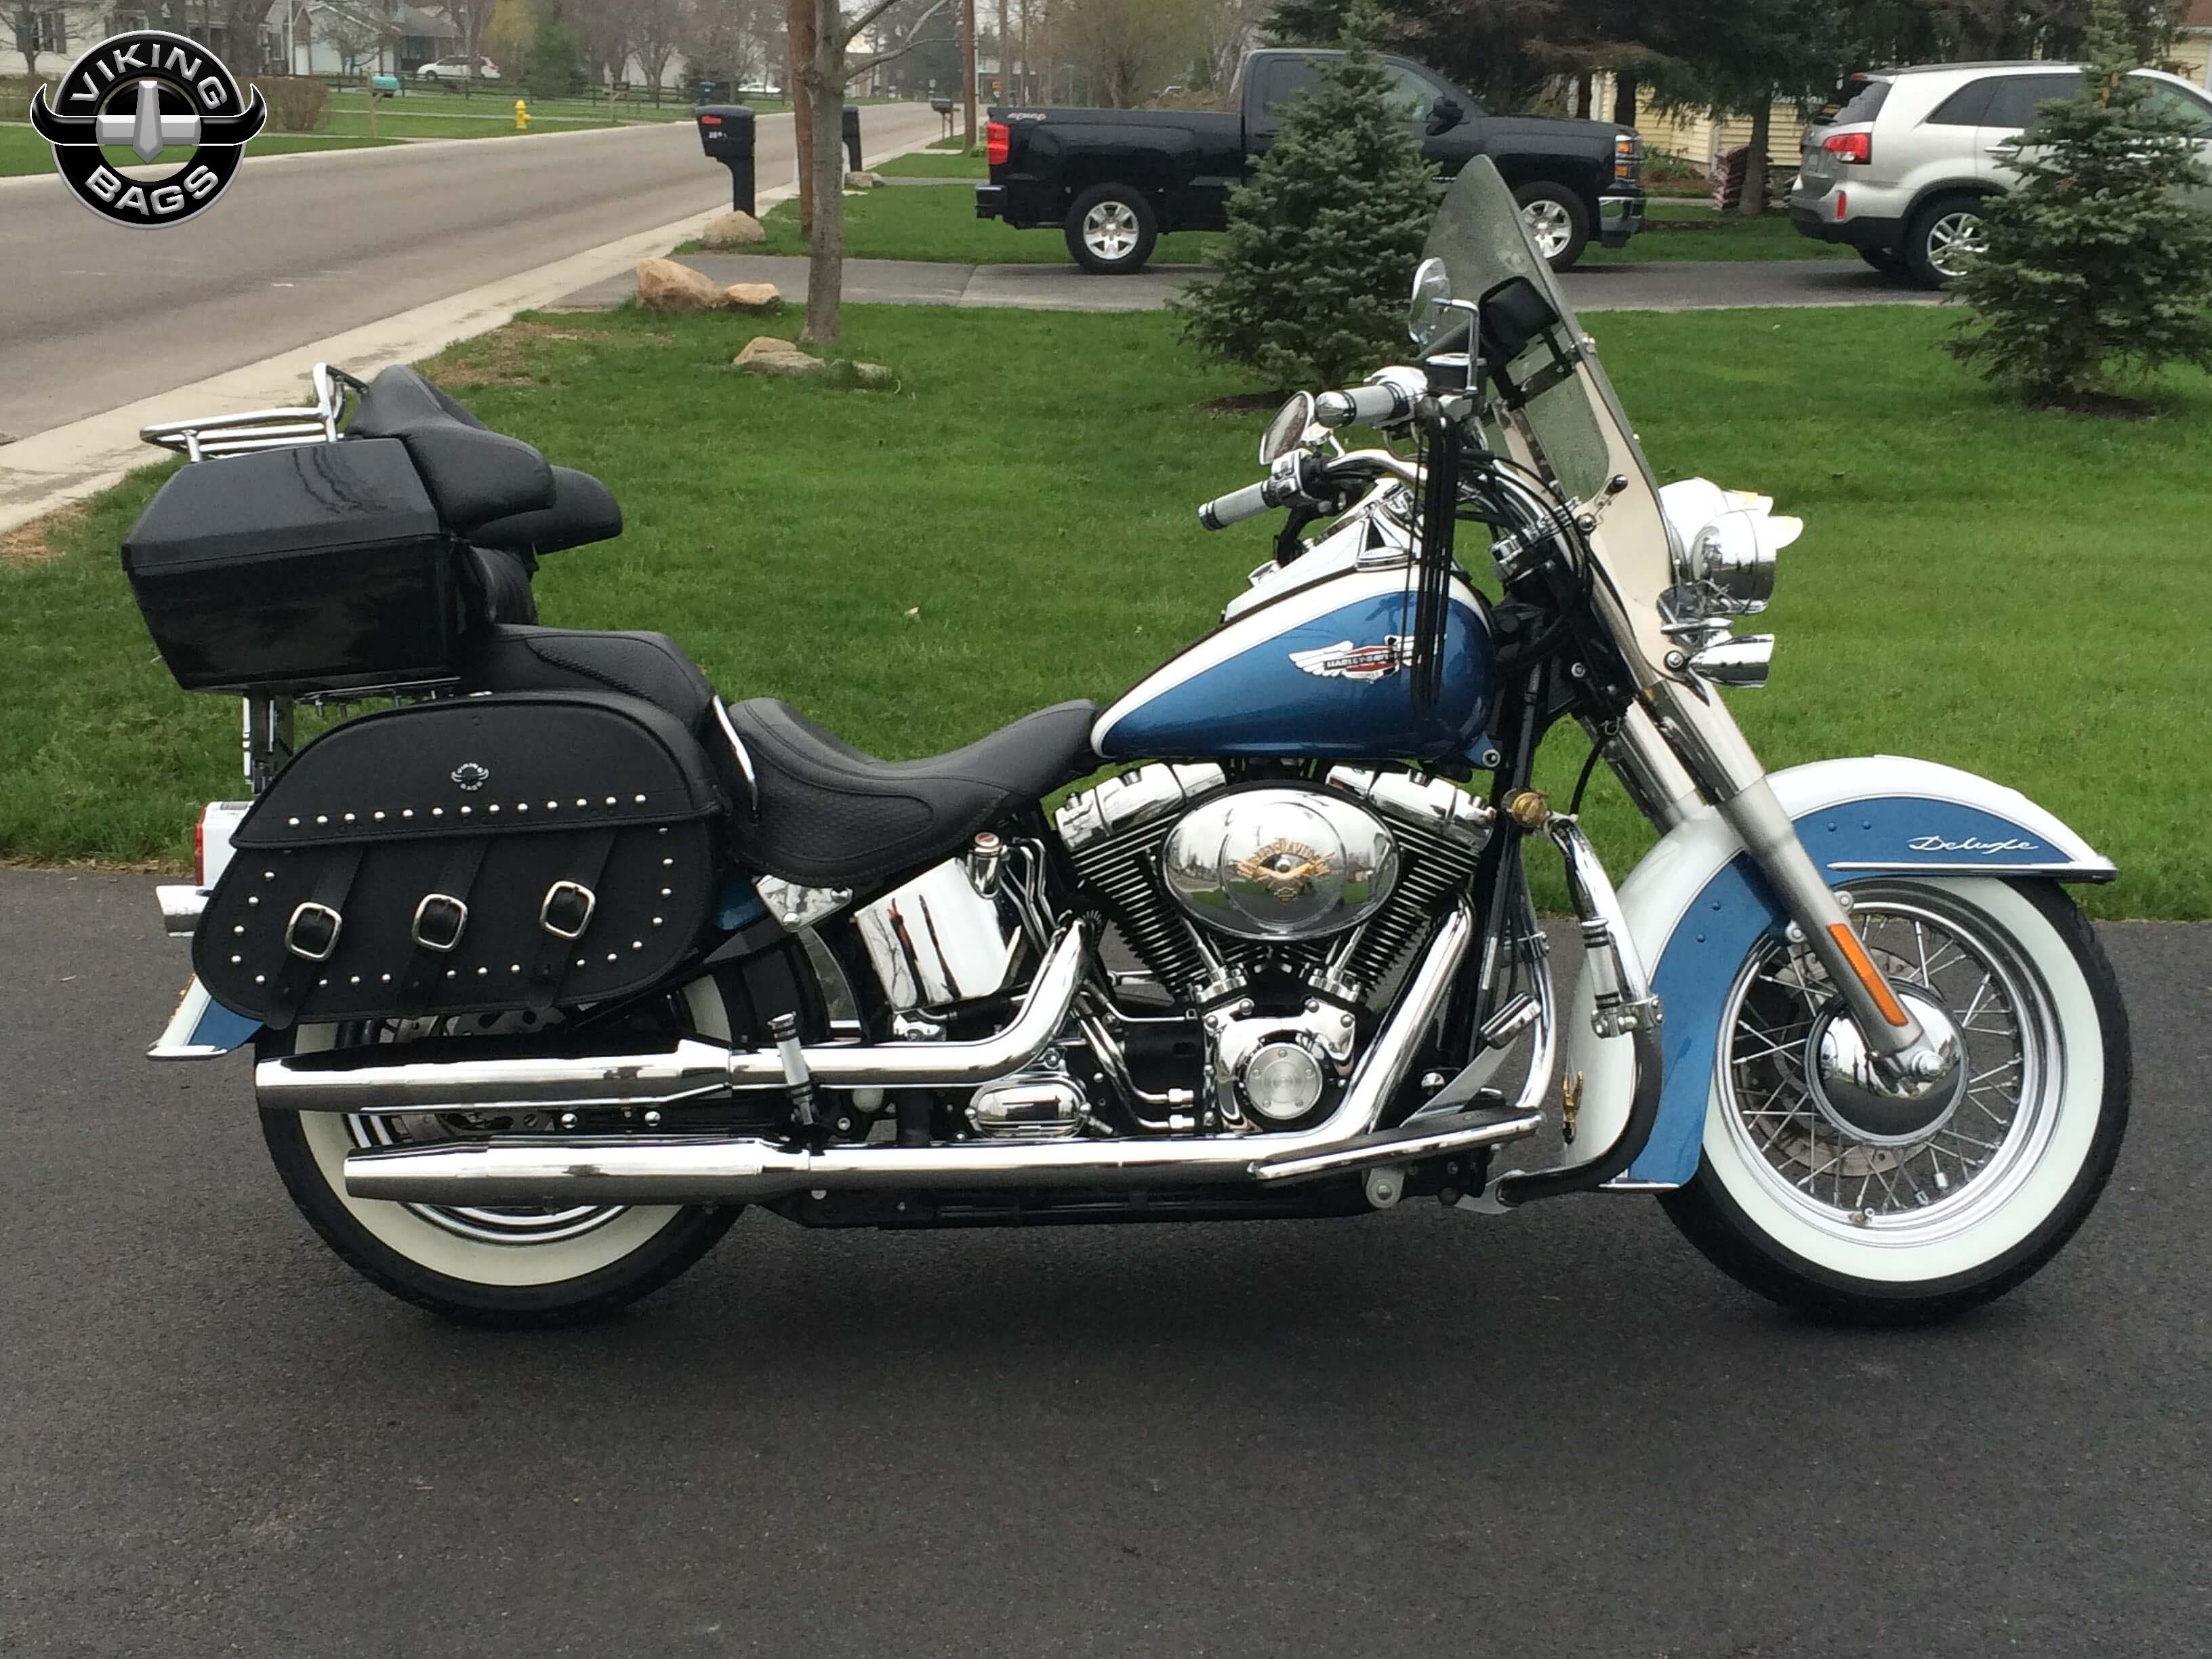 softail saddlebags shop bags for harley davidson softail. Black Bedroom Furniture Sets. Home Design Ideas